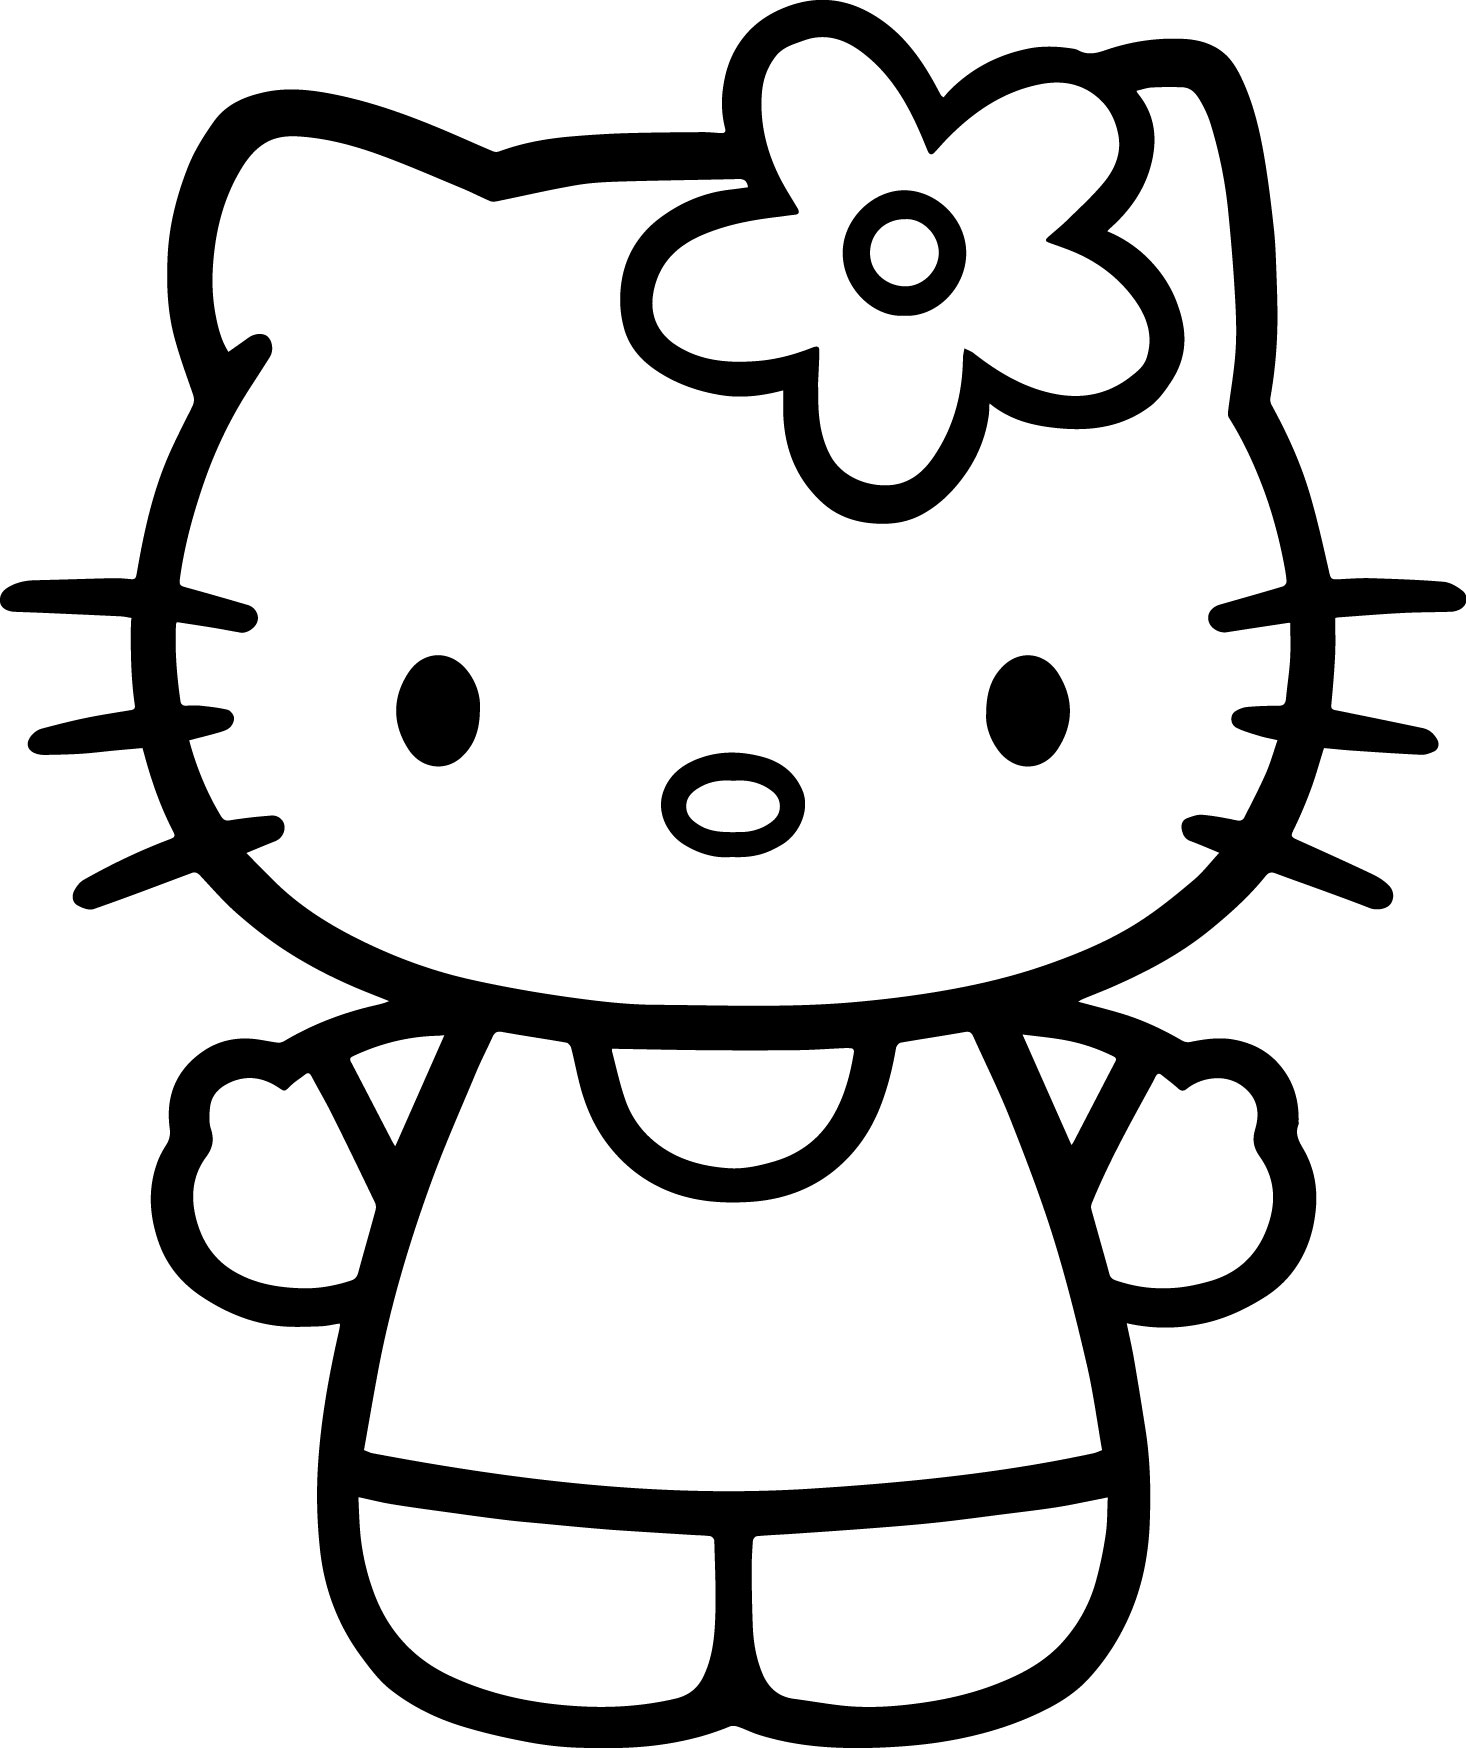 how do you draw hello kitty hello kitty drawing for kids at paintingvalleycom do kitty draw how you hello